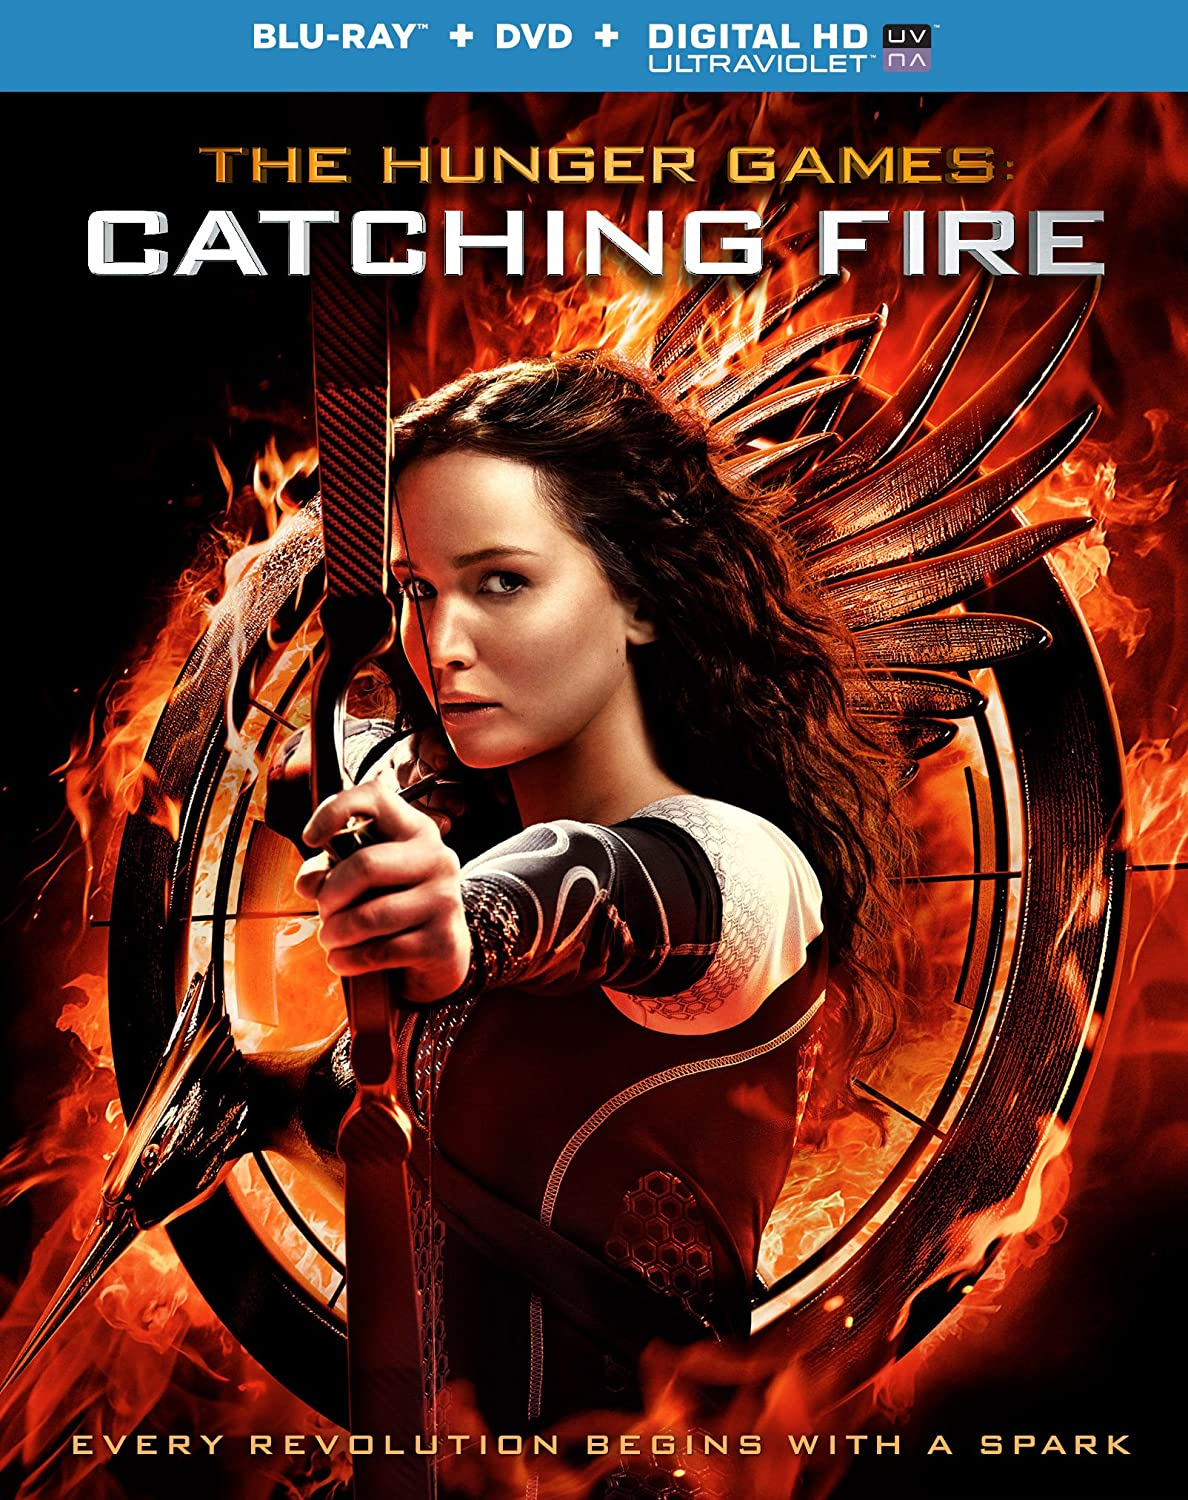 The Hunger Games: Catching Fire: March 7, 2014 - Blu-ray Forum